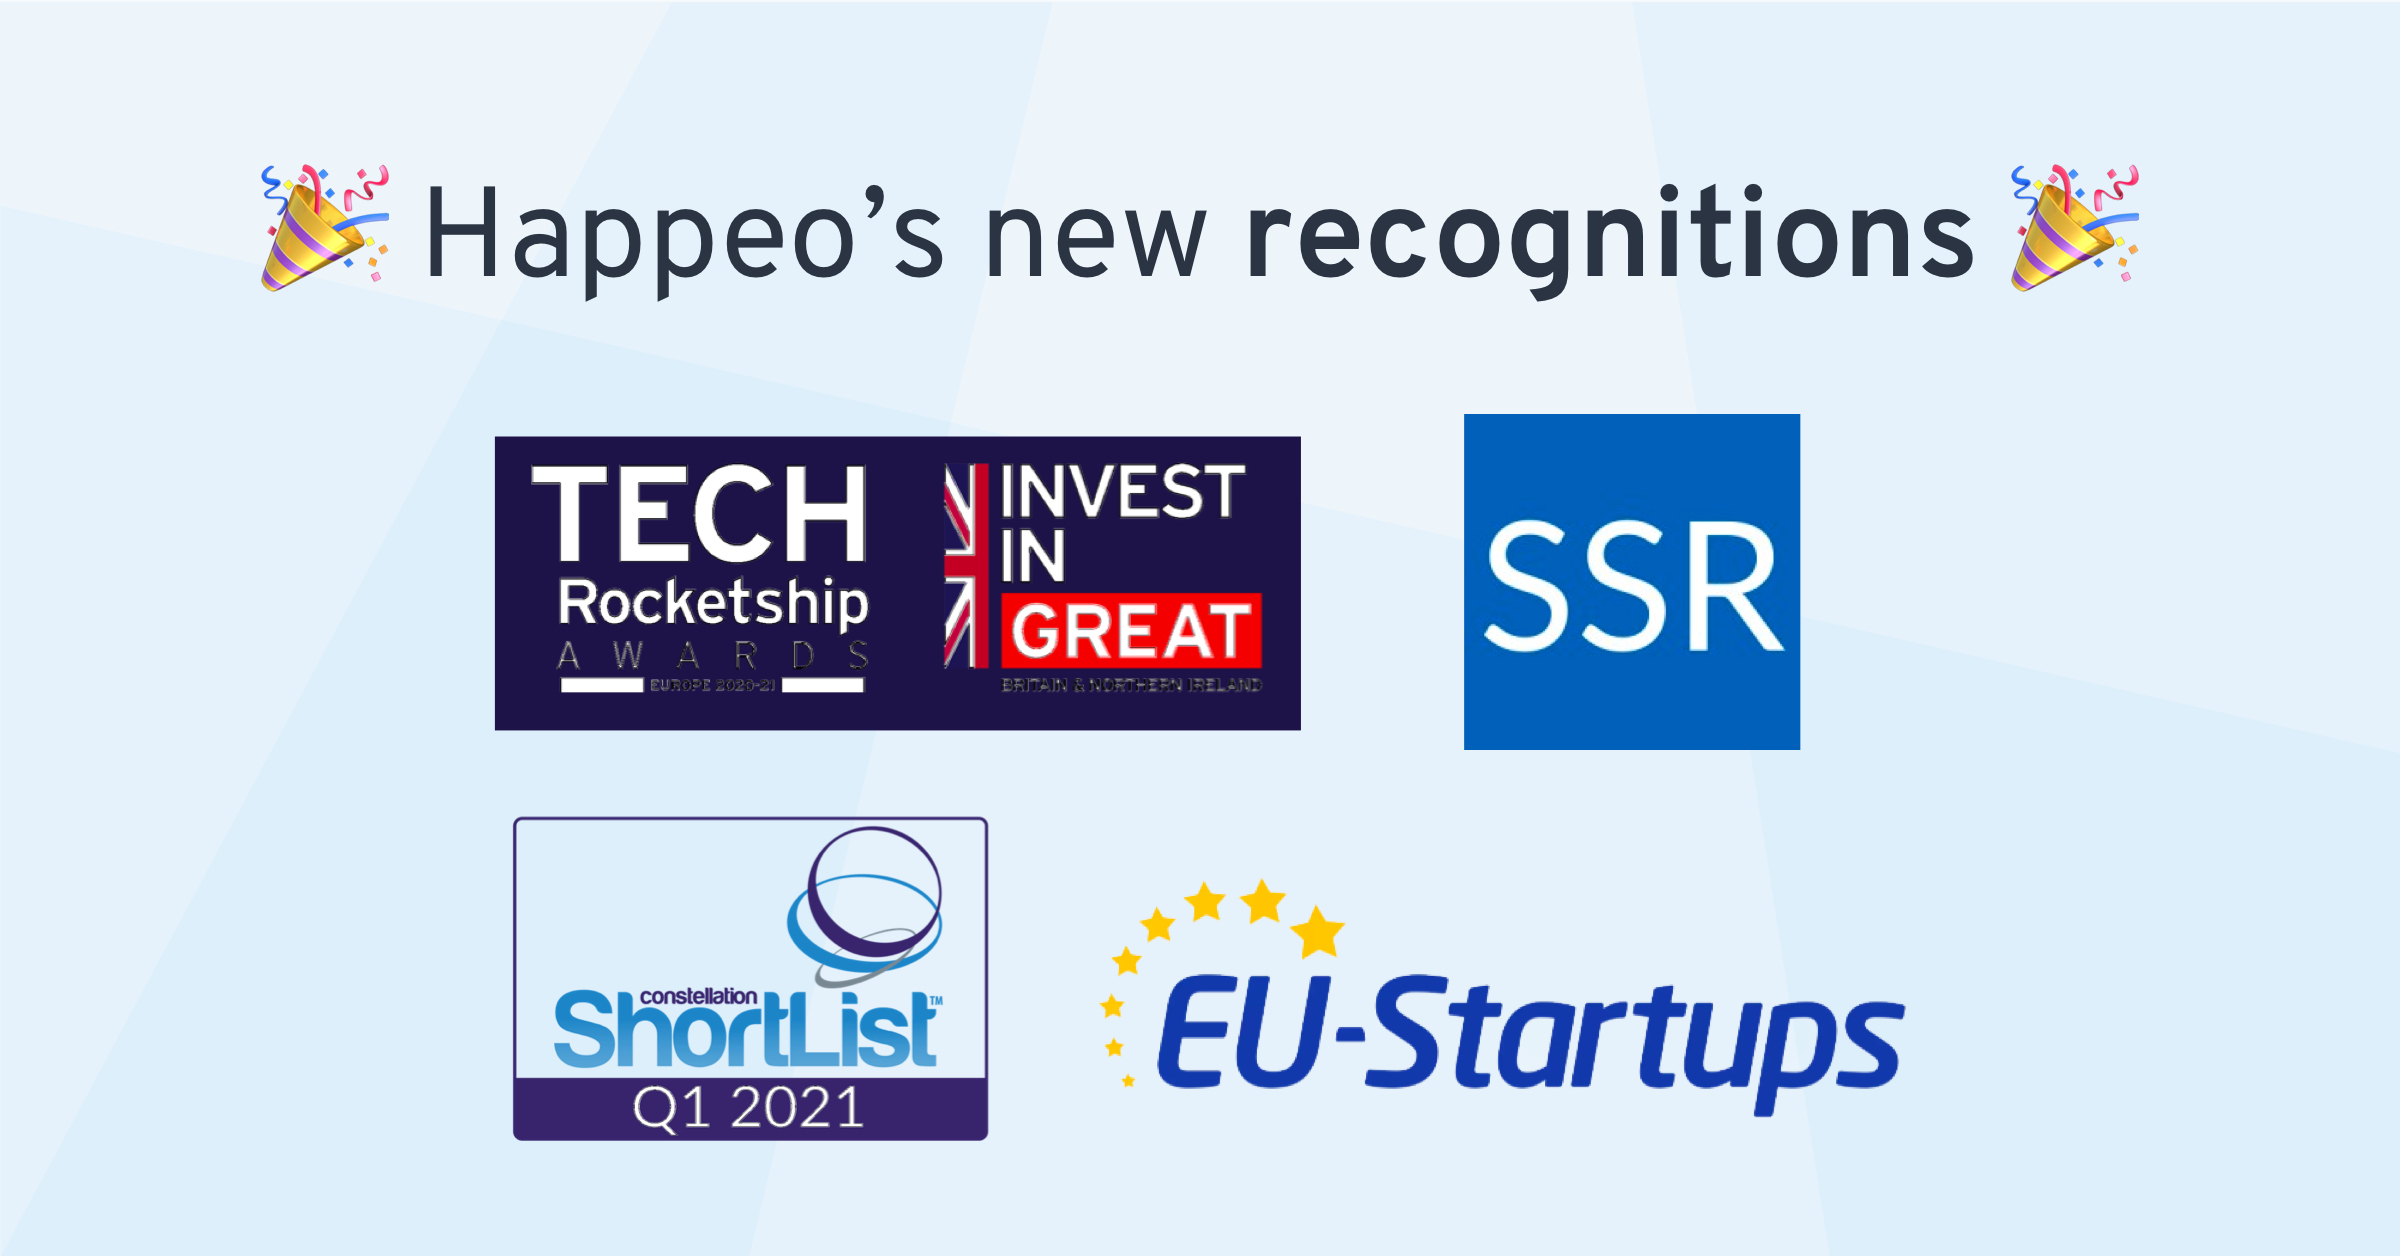 2021 kick-off: Constellation and others recognize Happeo